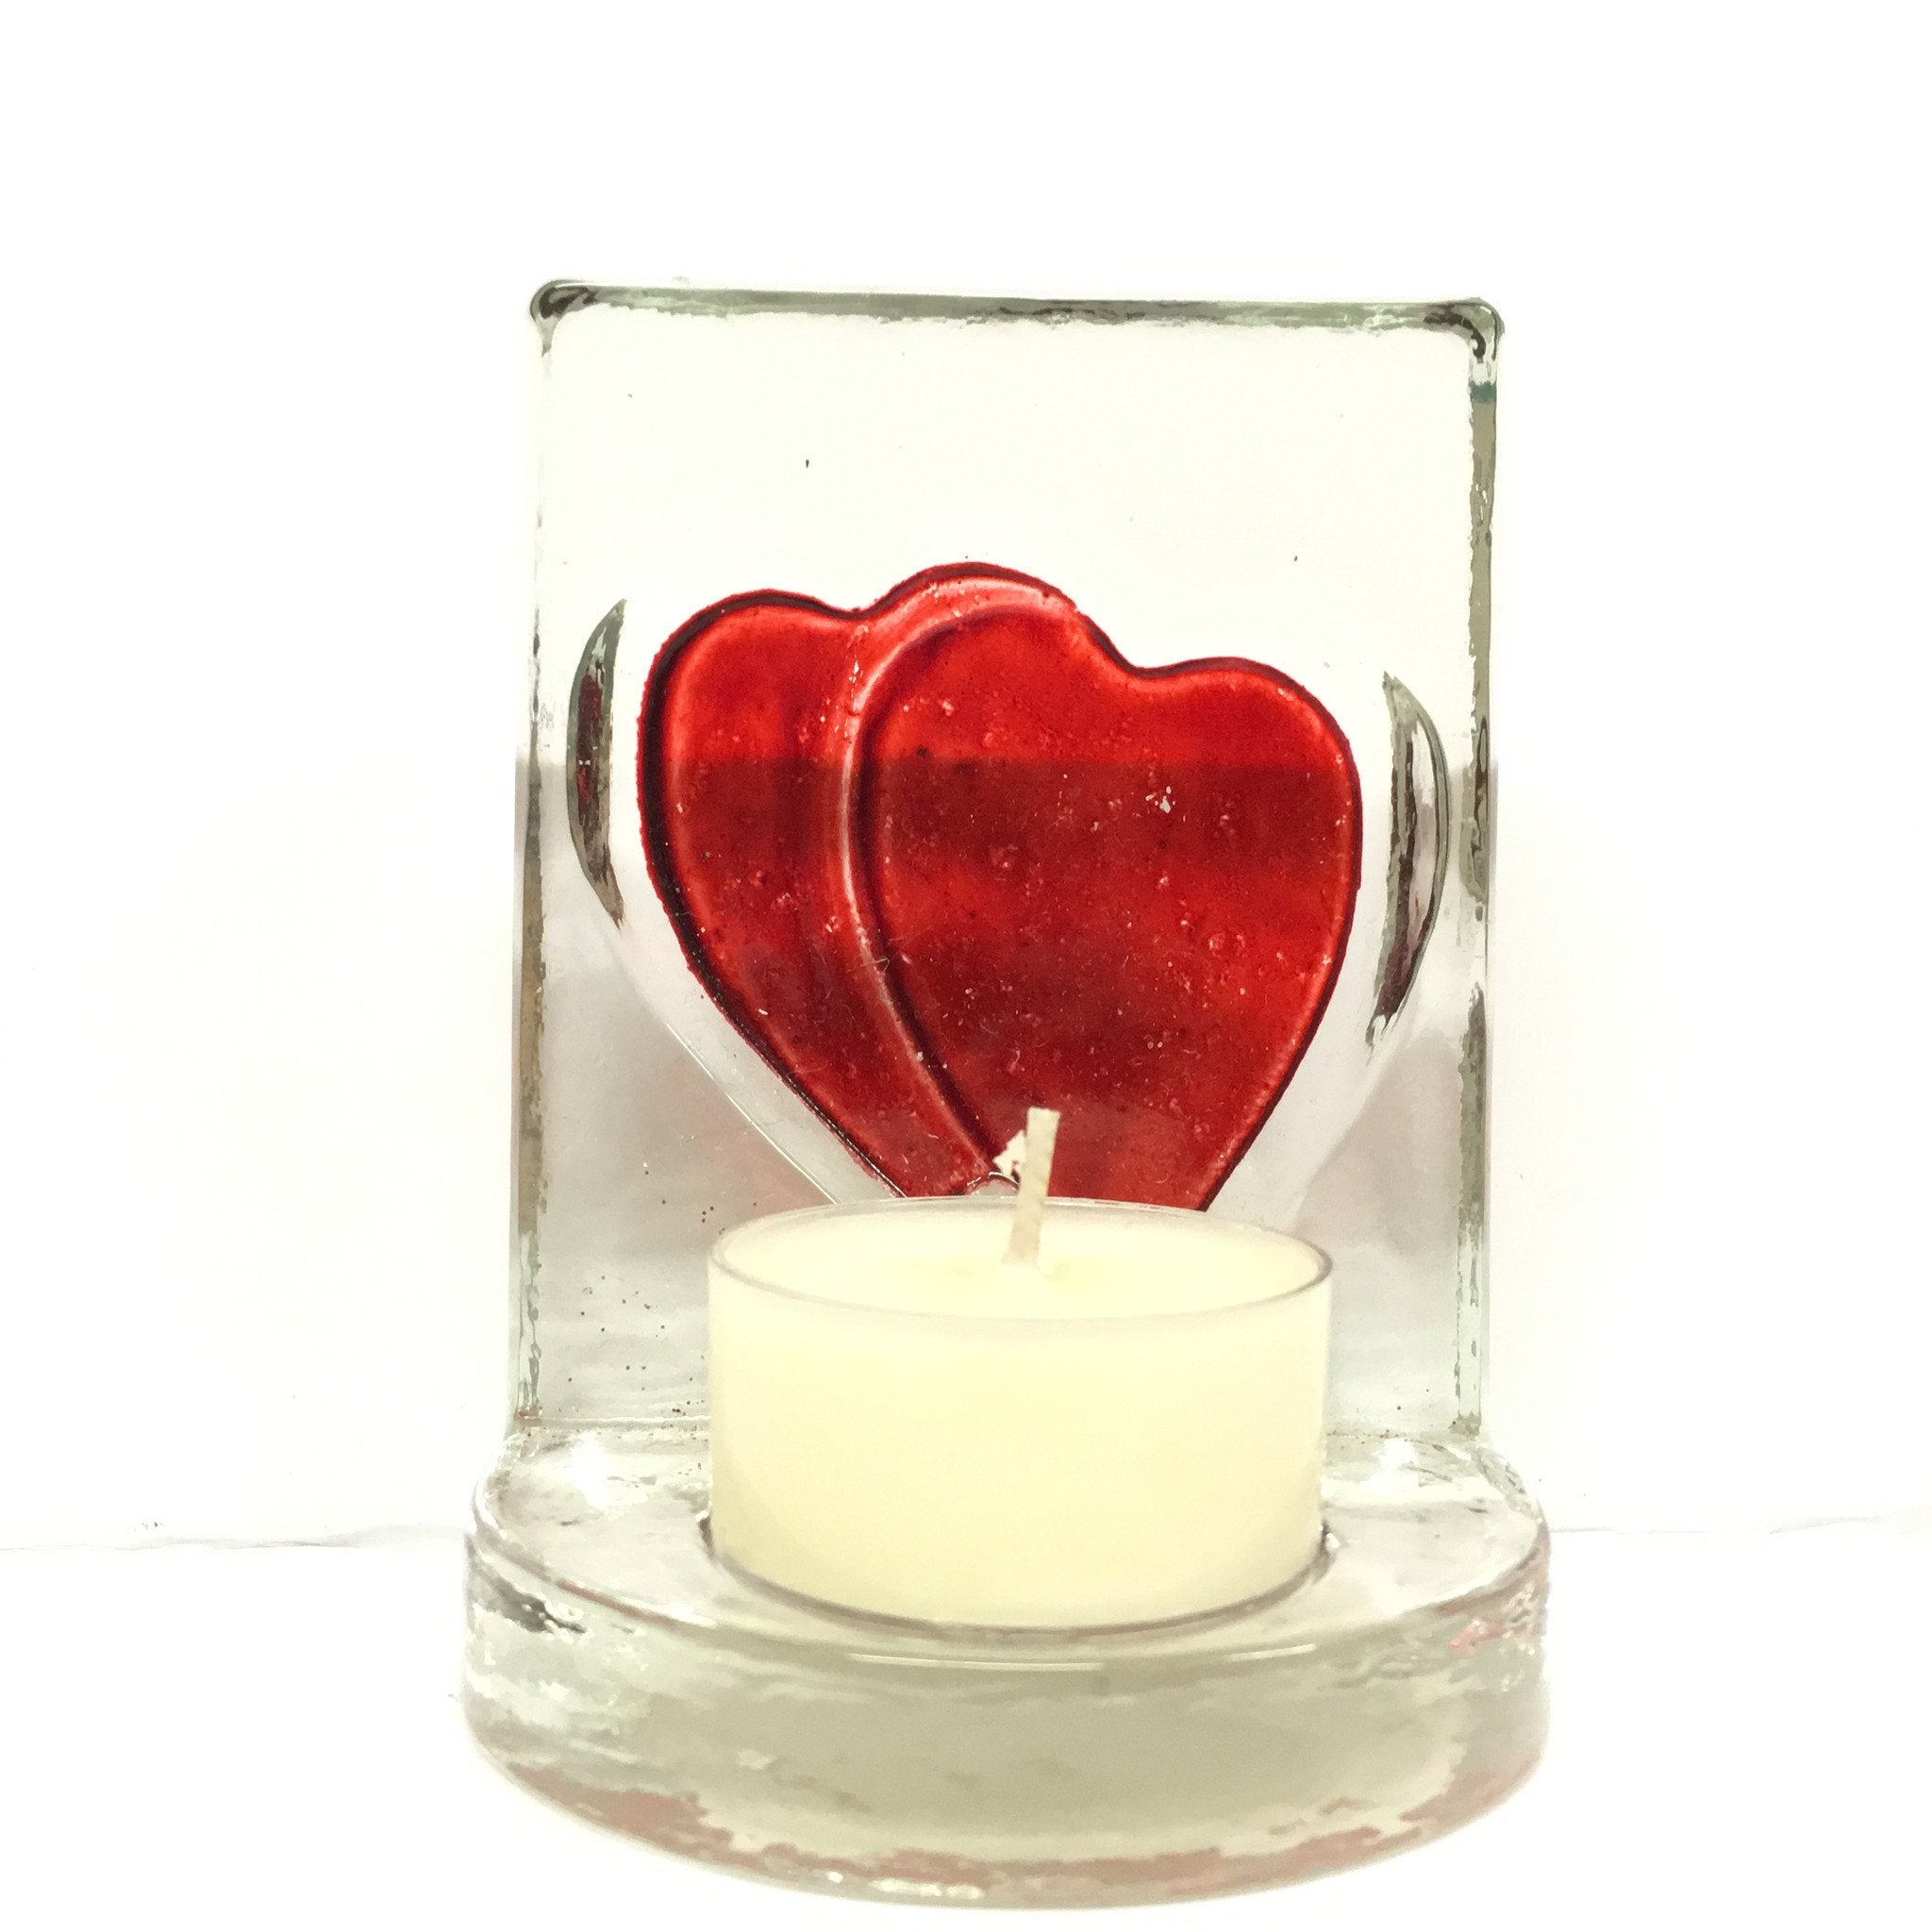 Heart Glass Tealights Holder -  - Bella-Mia Naturals All Natural Soy Candles & Lip Balms - 4